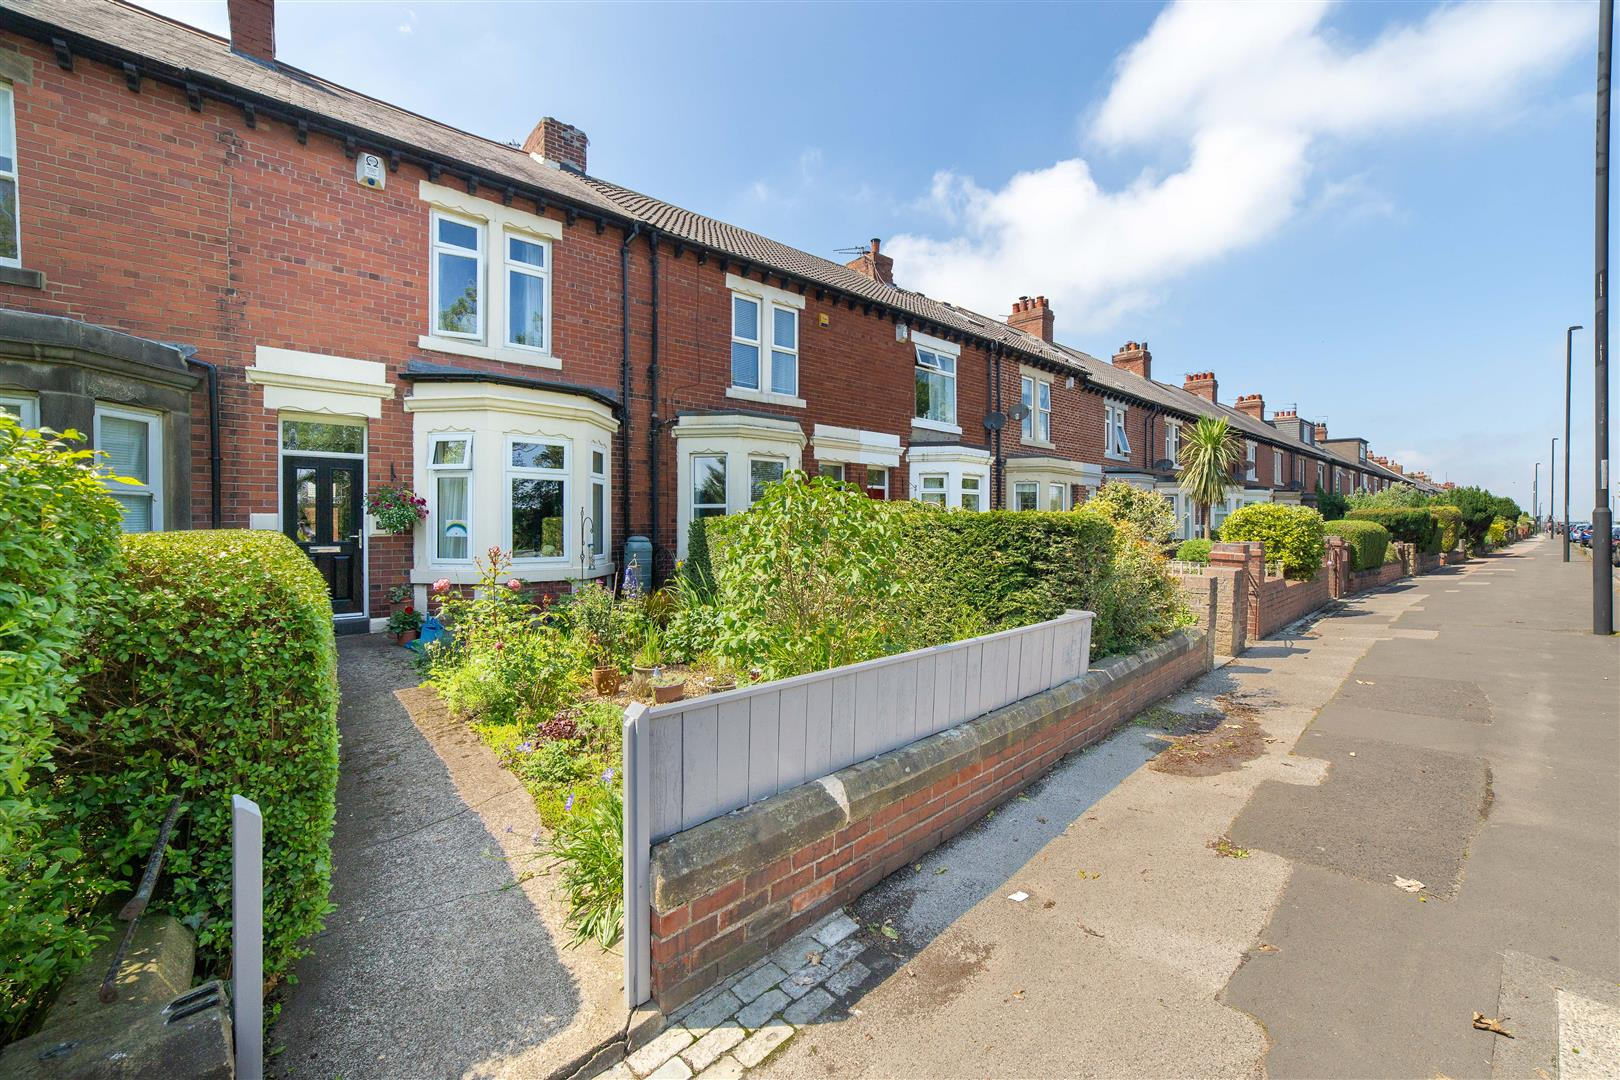 2 bed terraced house for sale in Wideopen, NE13 6LH, NE13